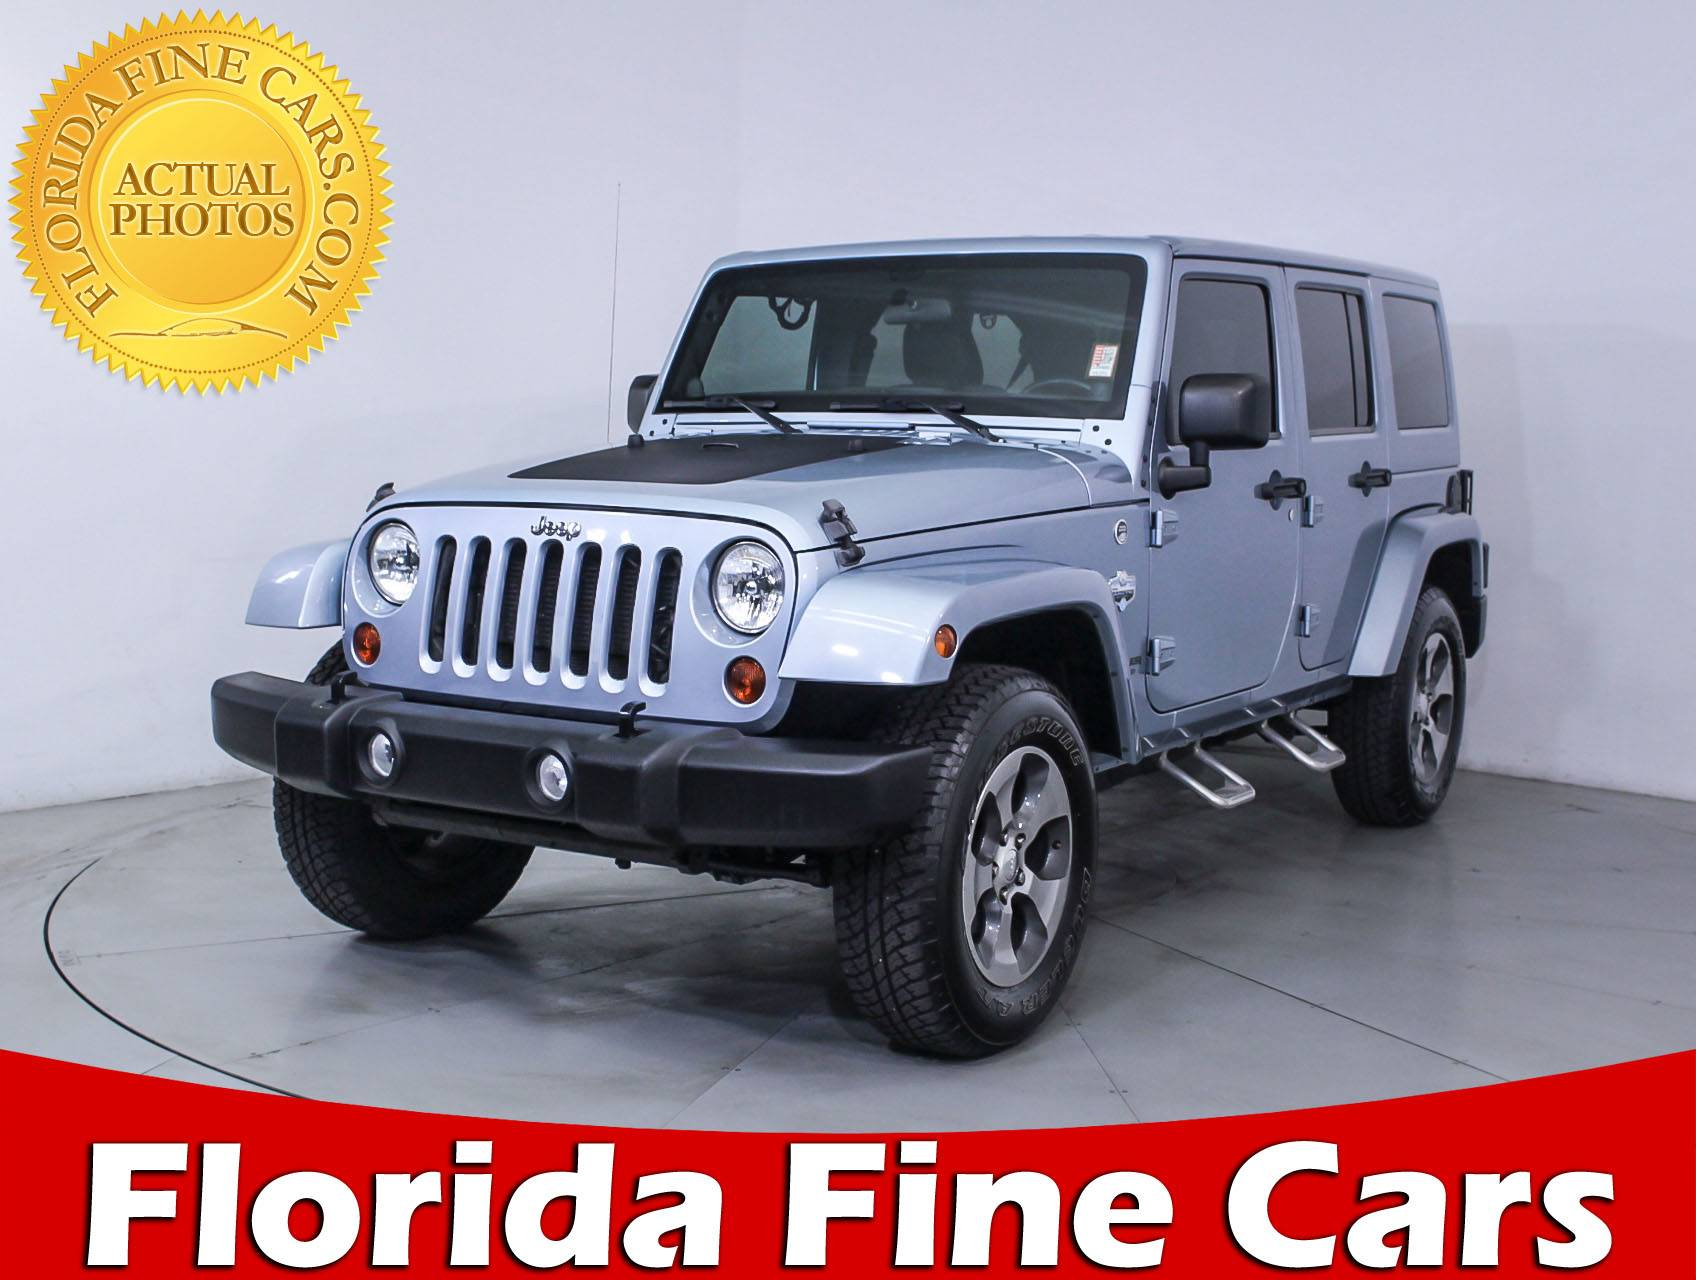 Used 2012 JEEP WRANGLER UNLIMITED Sahara Artic Edition SUV for sale